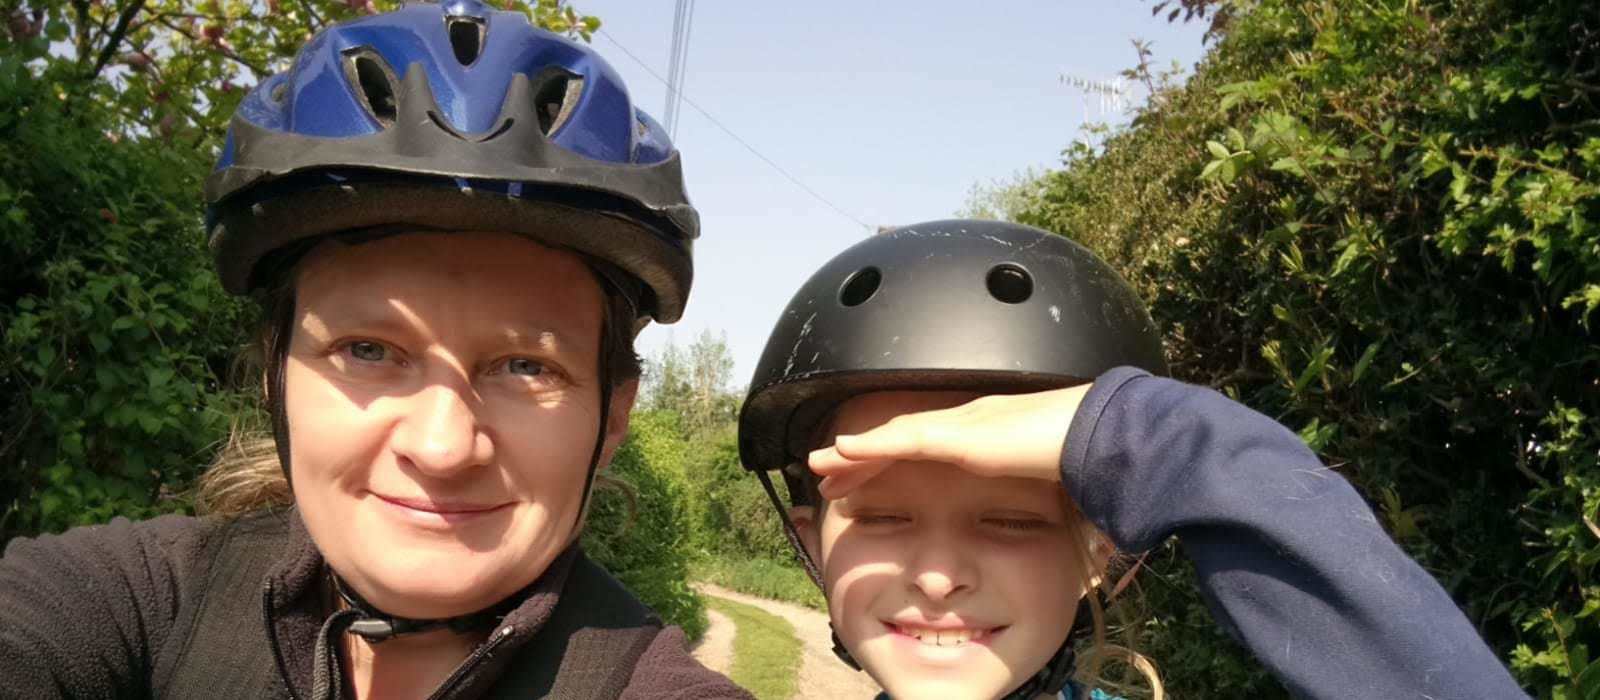 ruth challis and daughter on bike ride for 2.6 challenge